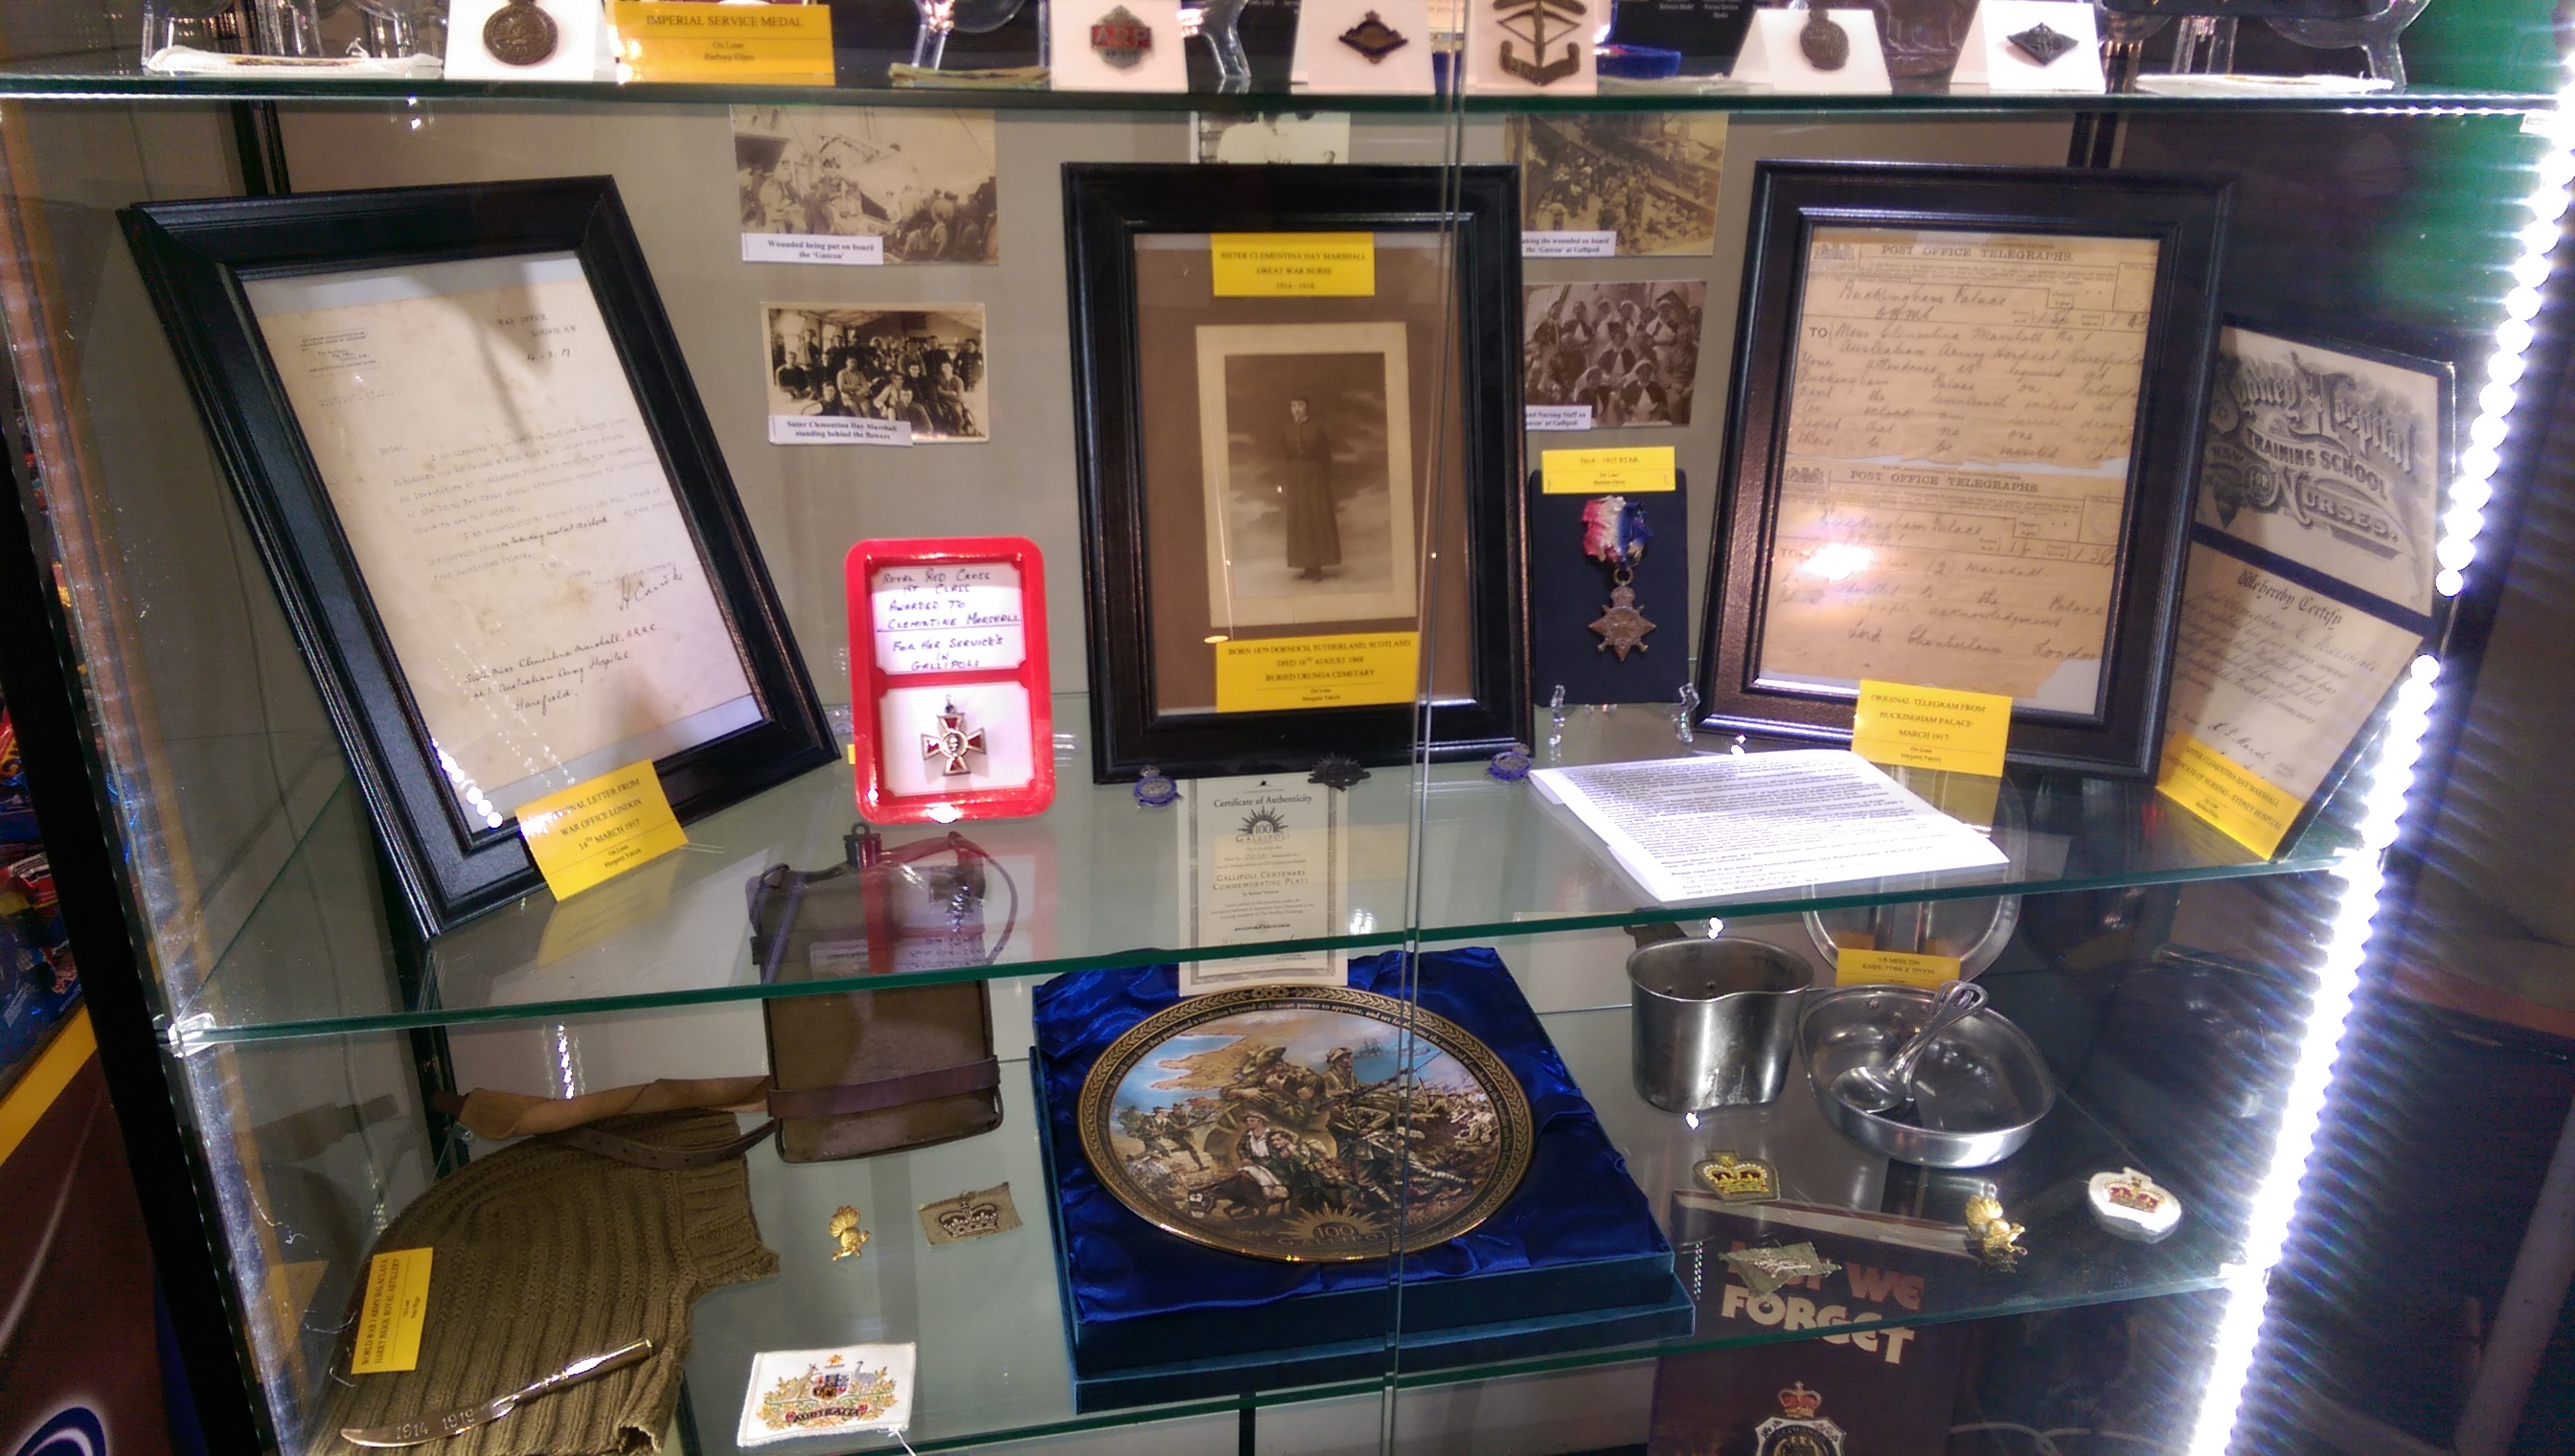 urunga rsl display cabinet 2015 with royal red cross included